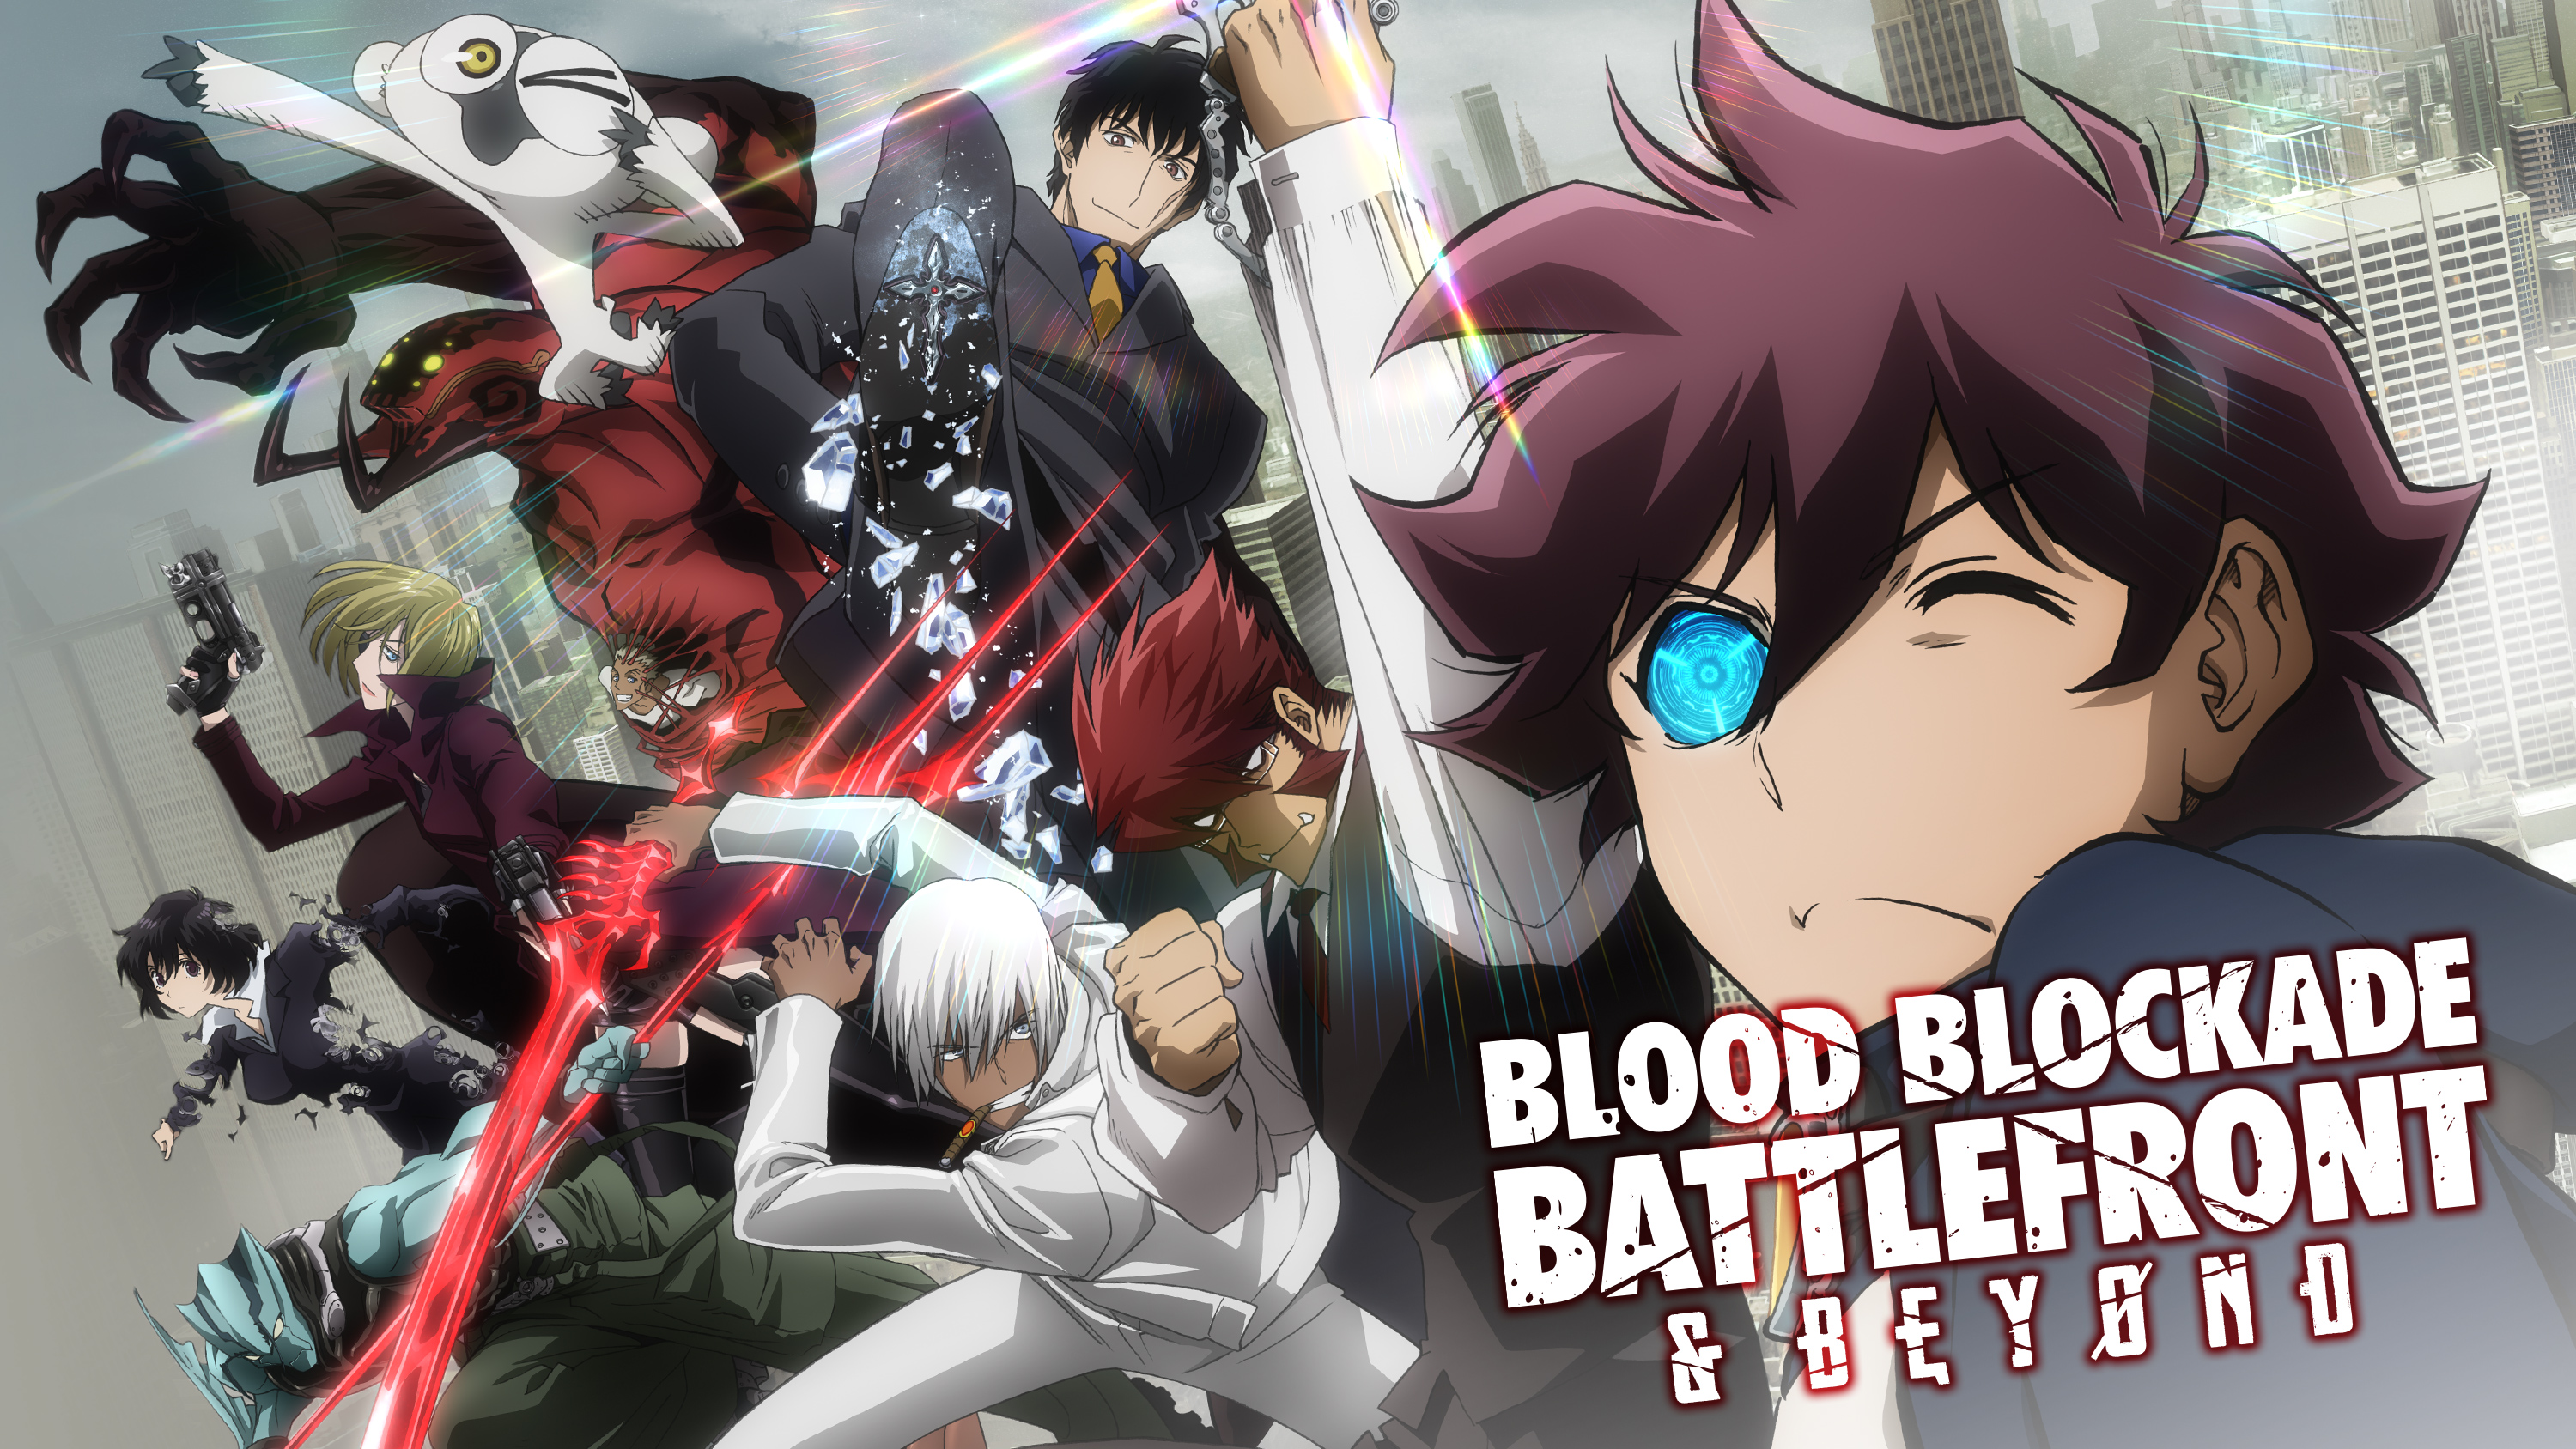 blood blockade battlefront and beyond episode 3 english dub